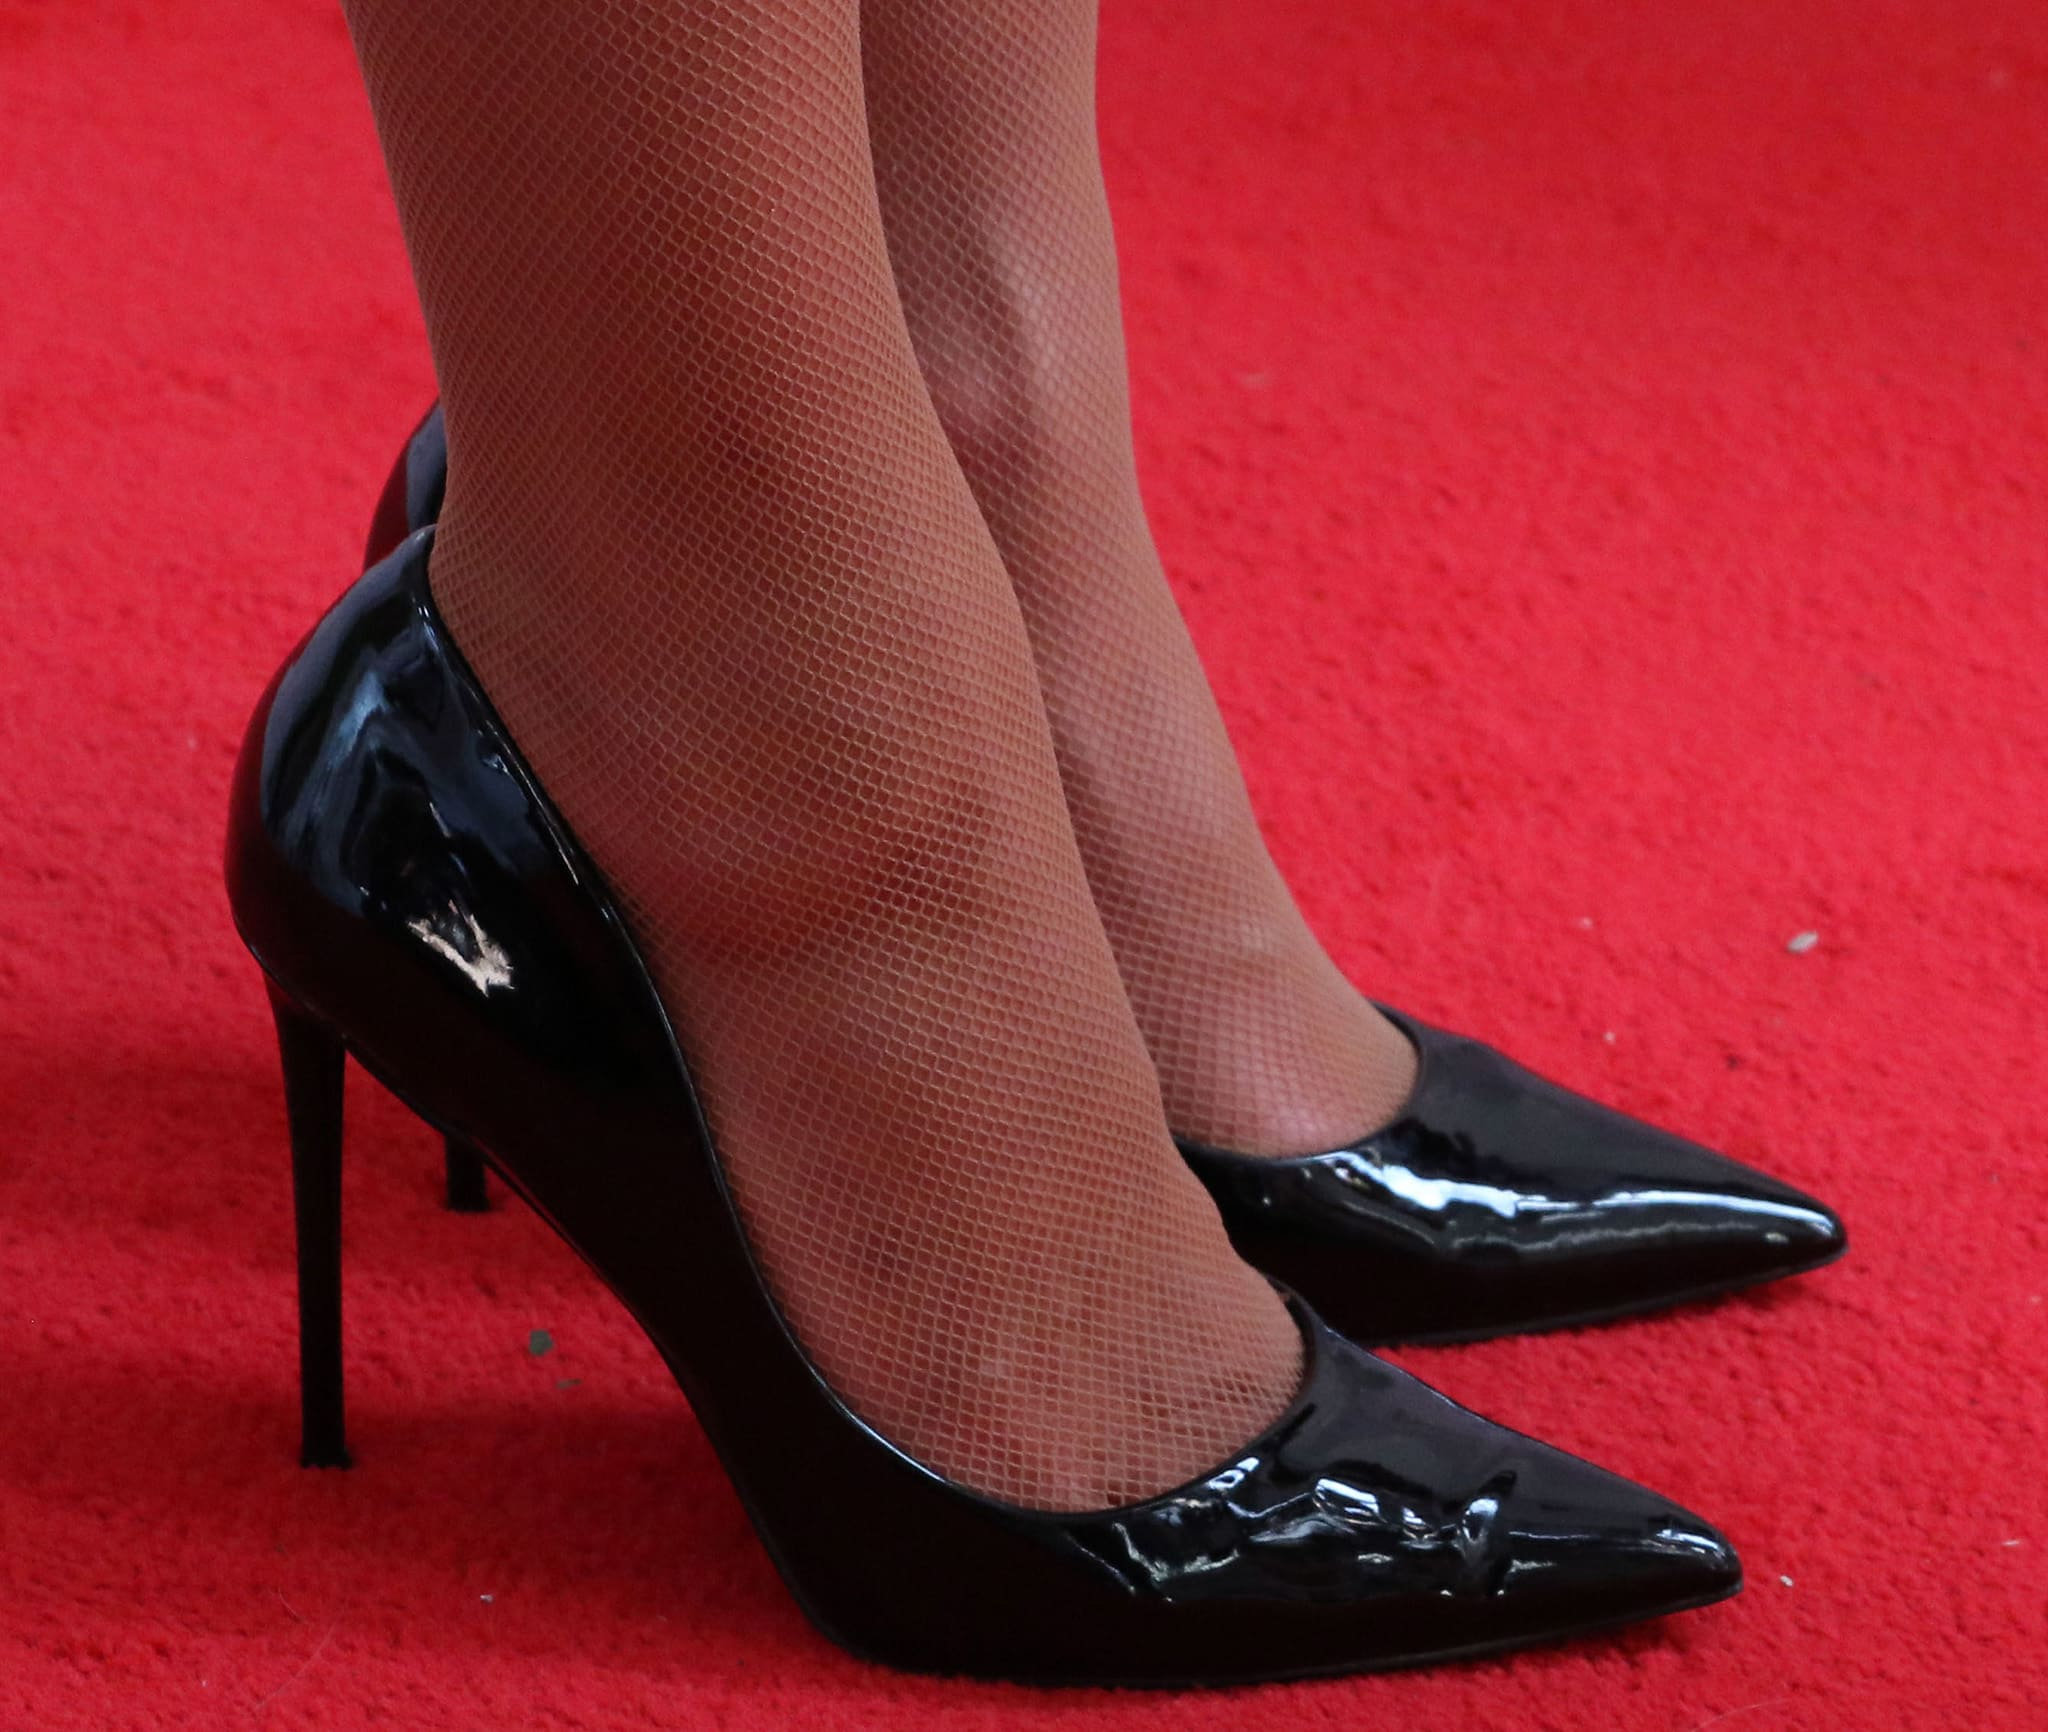 Paris Hilton shows off her feet in sheer fishnets and black patent leather pumps